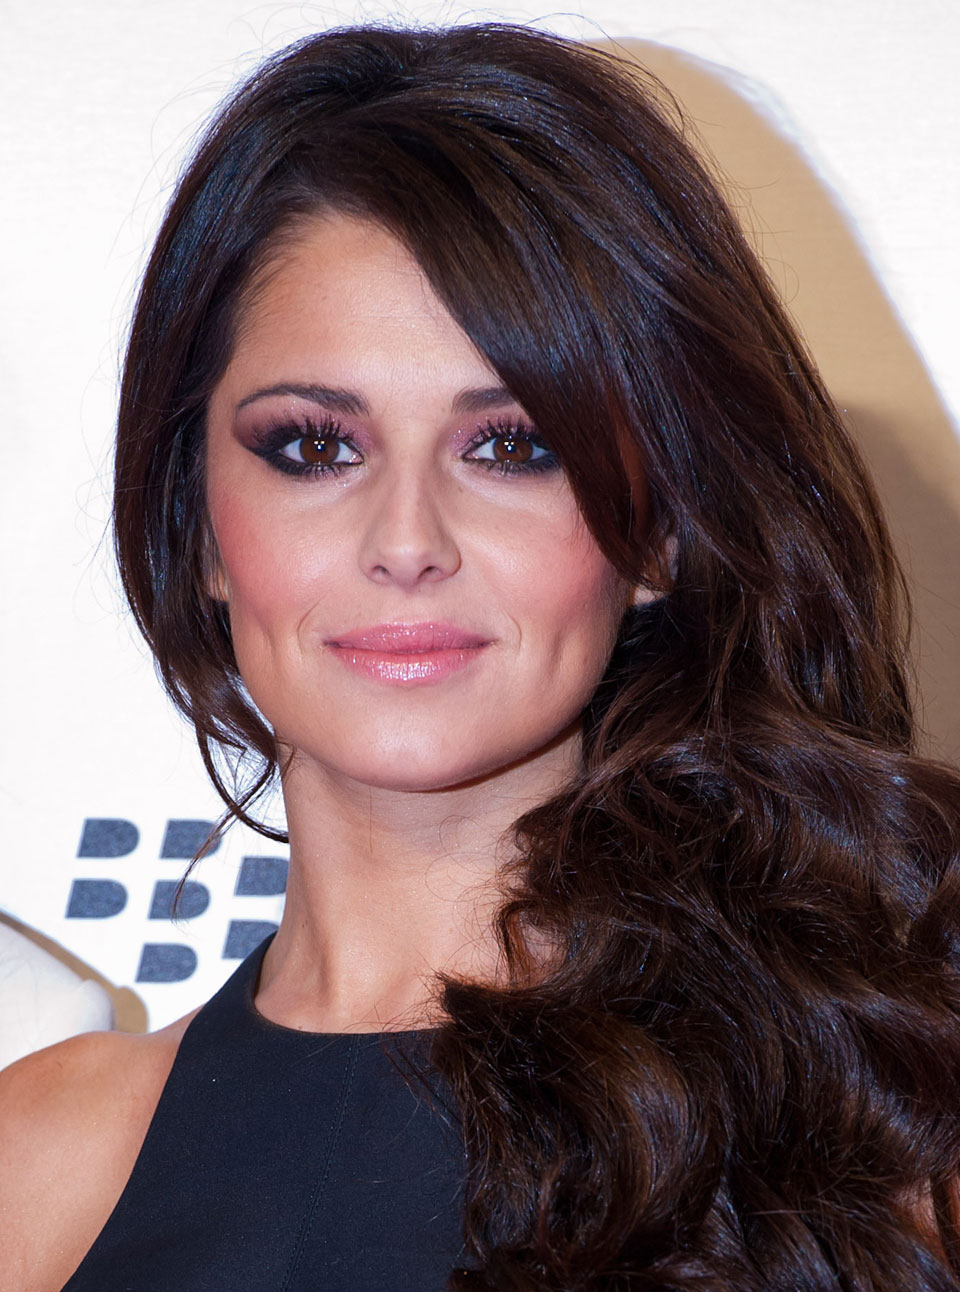 Cheryl Cole Photos | Full HD Pictures Cheryl Cole Photos